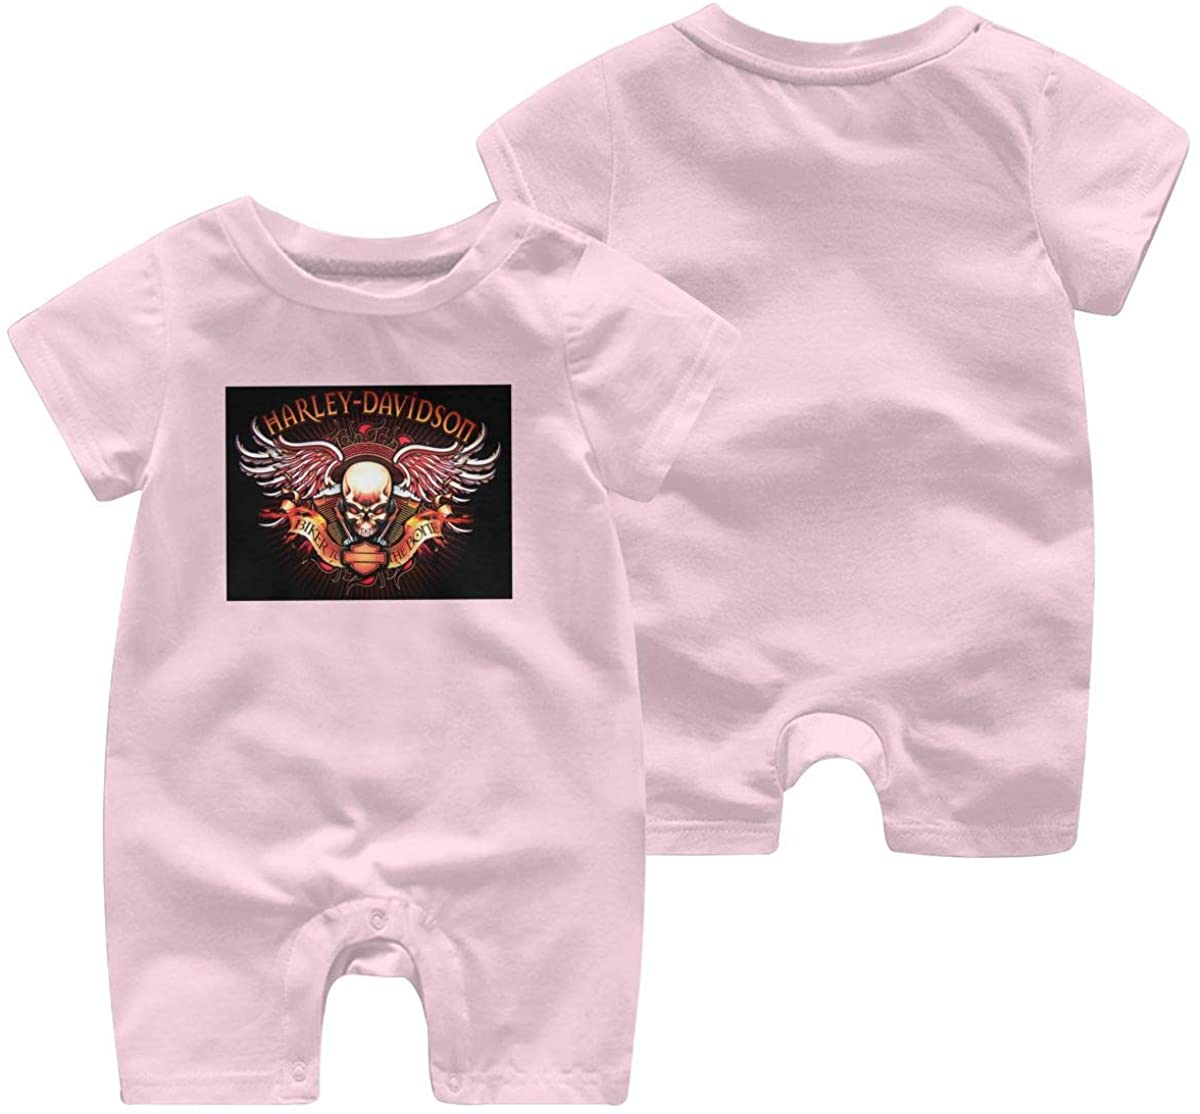 Harley Davidson One Piece Outfits Baby Solid Color Rompers with Button Kids Short Sleeve Playsuit Jumpsuits Cotton Clothing 6 Months Pink